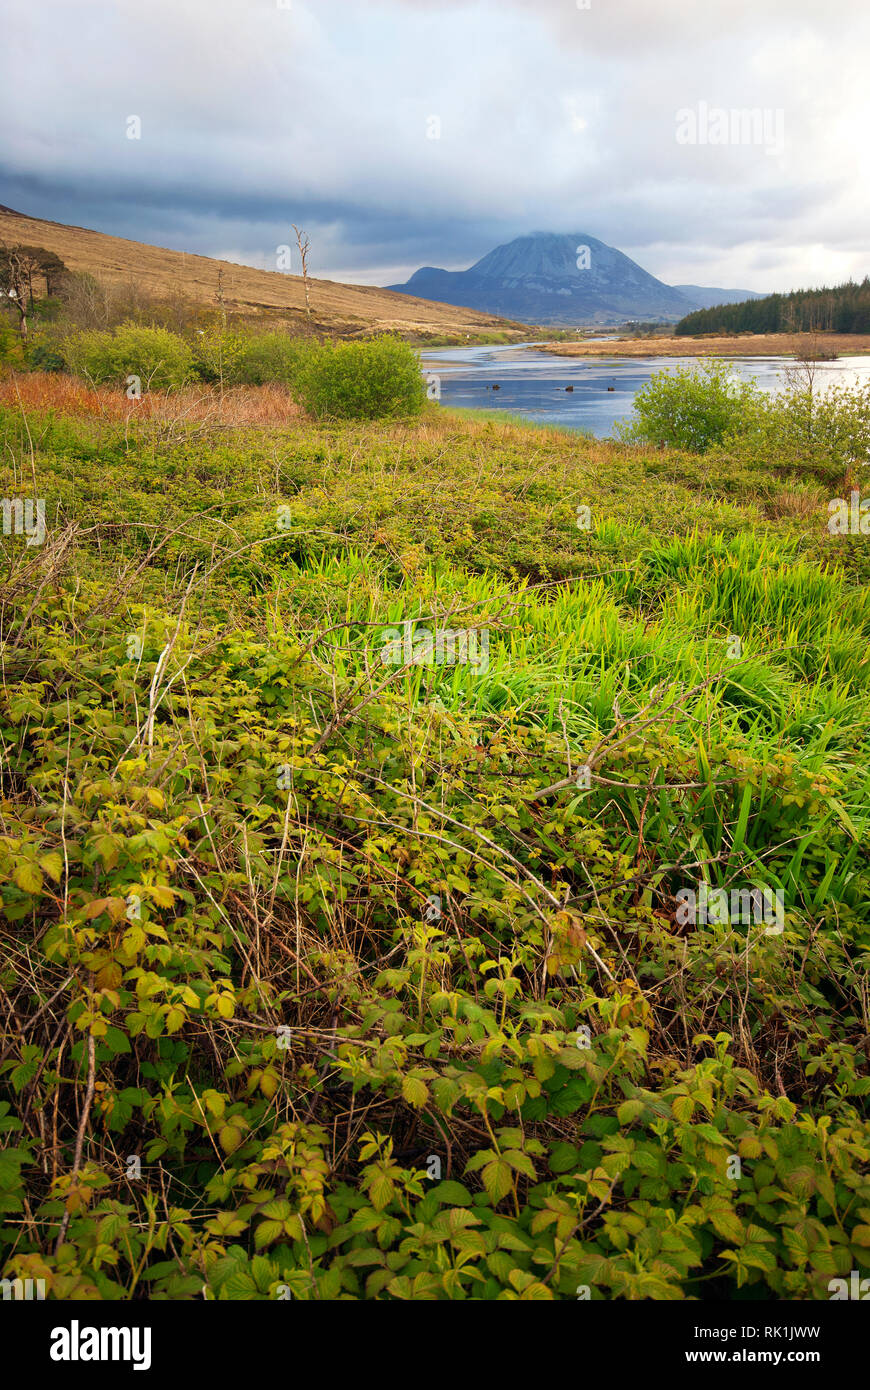 Clady river and Mount Errigal semi covered by clouds, County Donegal, Ireland - Stock Image